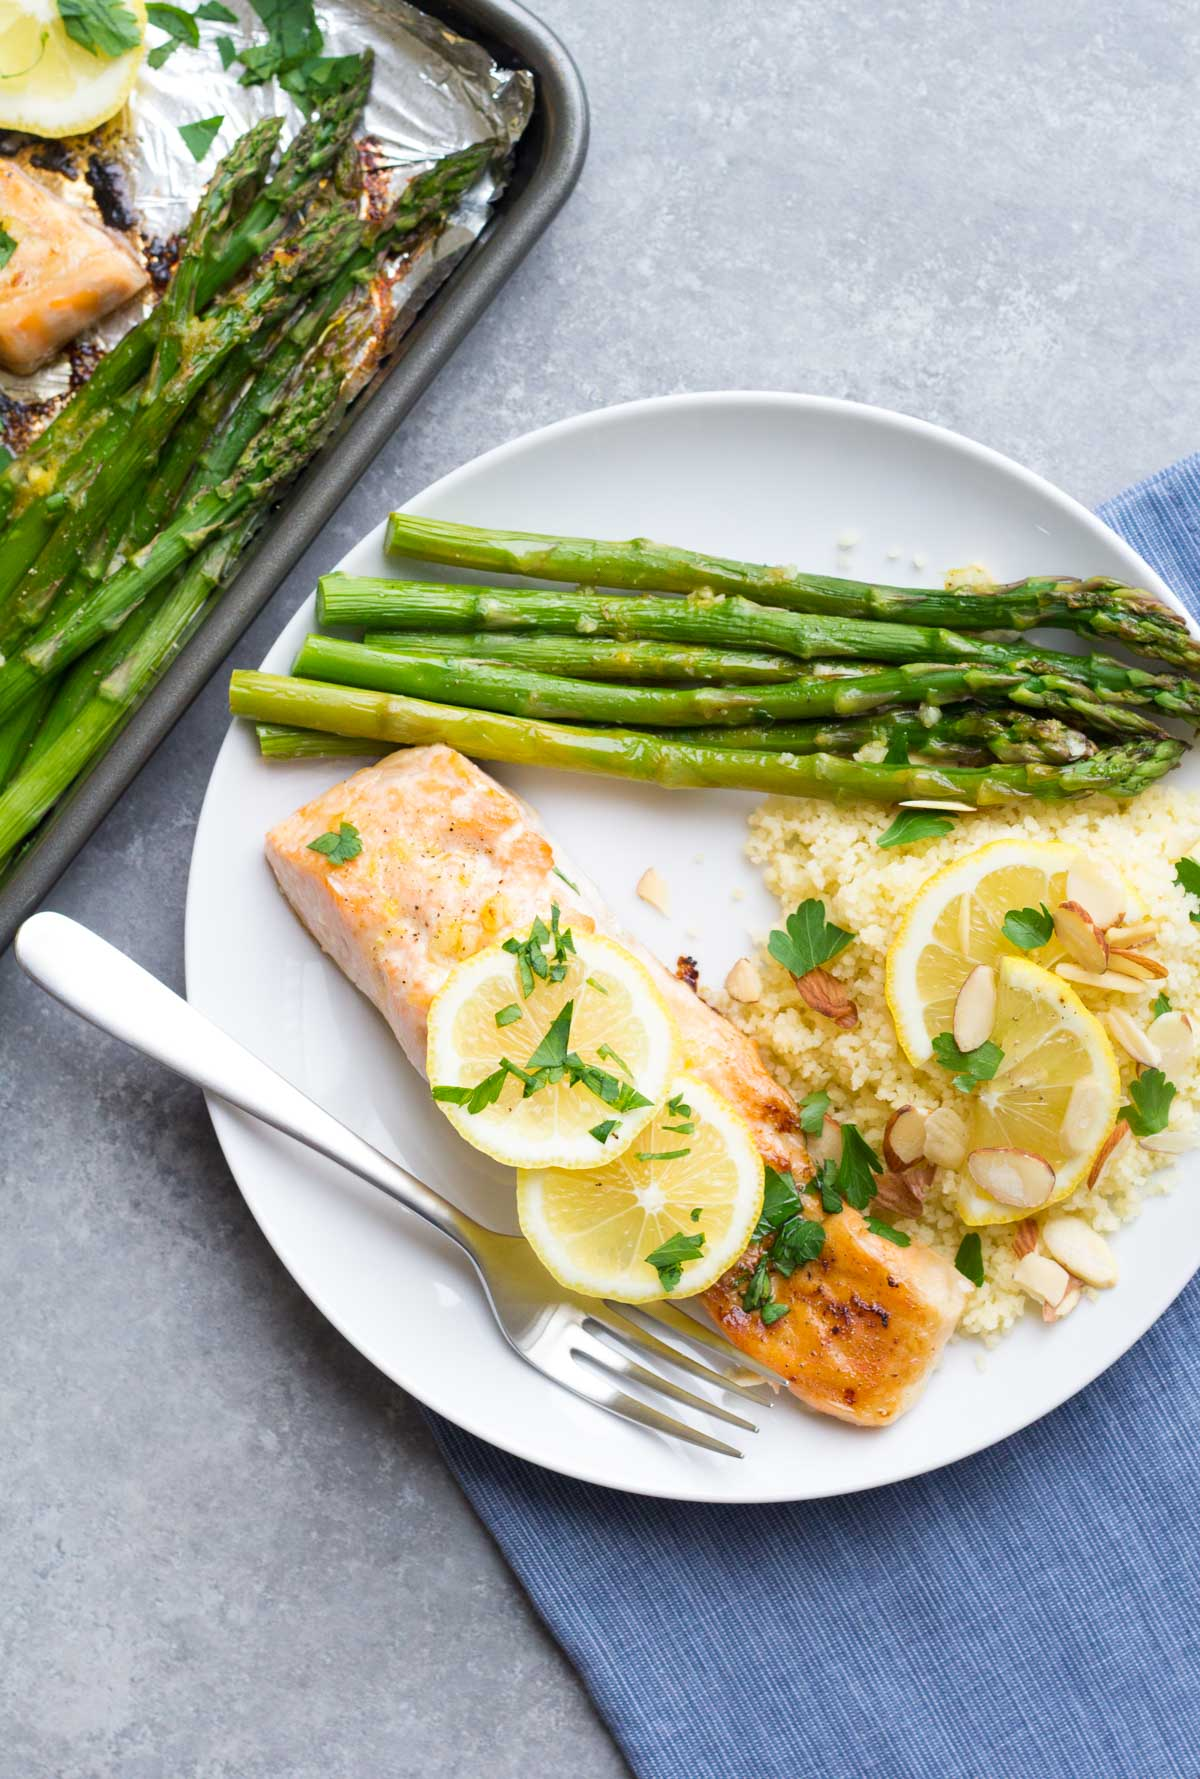 overhead view of baked lemon garlic salmon on plate with sides of asparagus and couscous